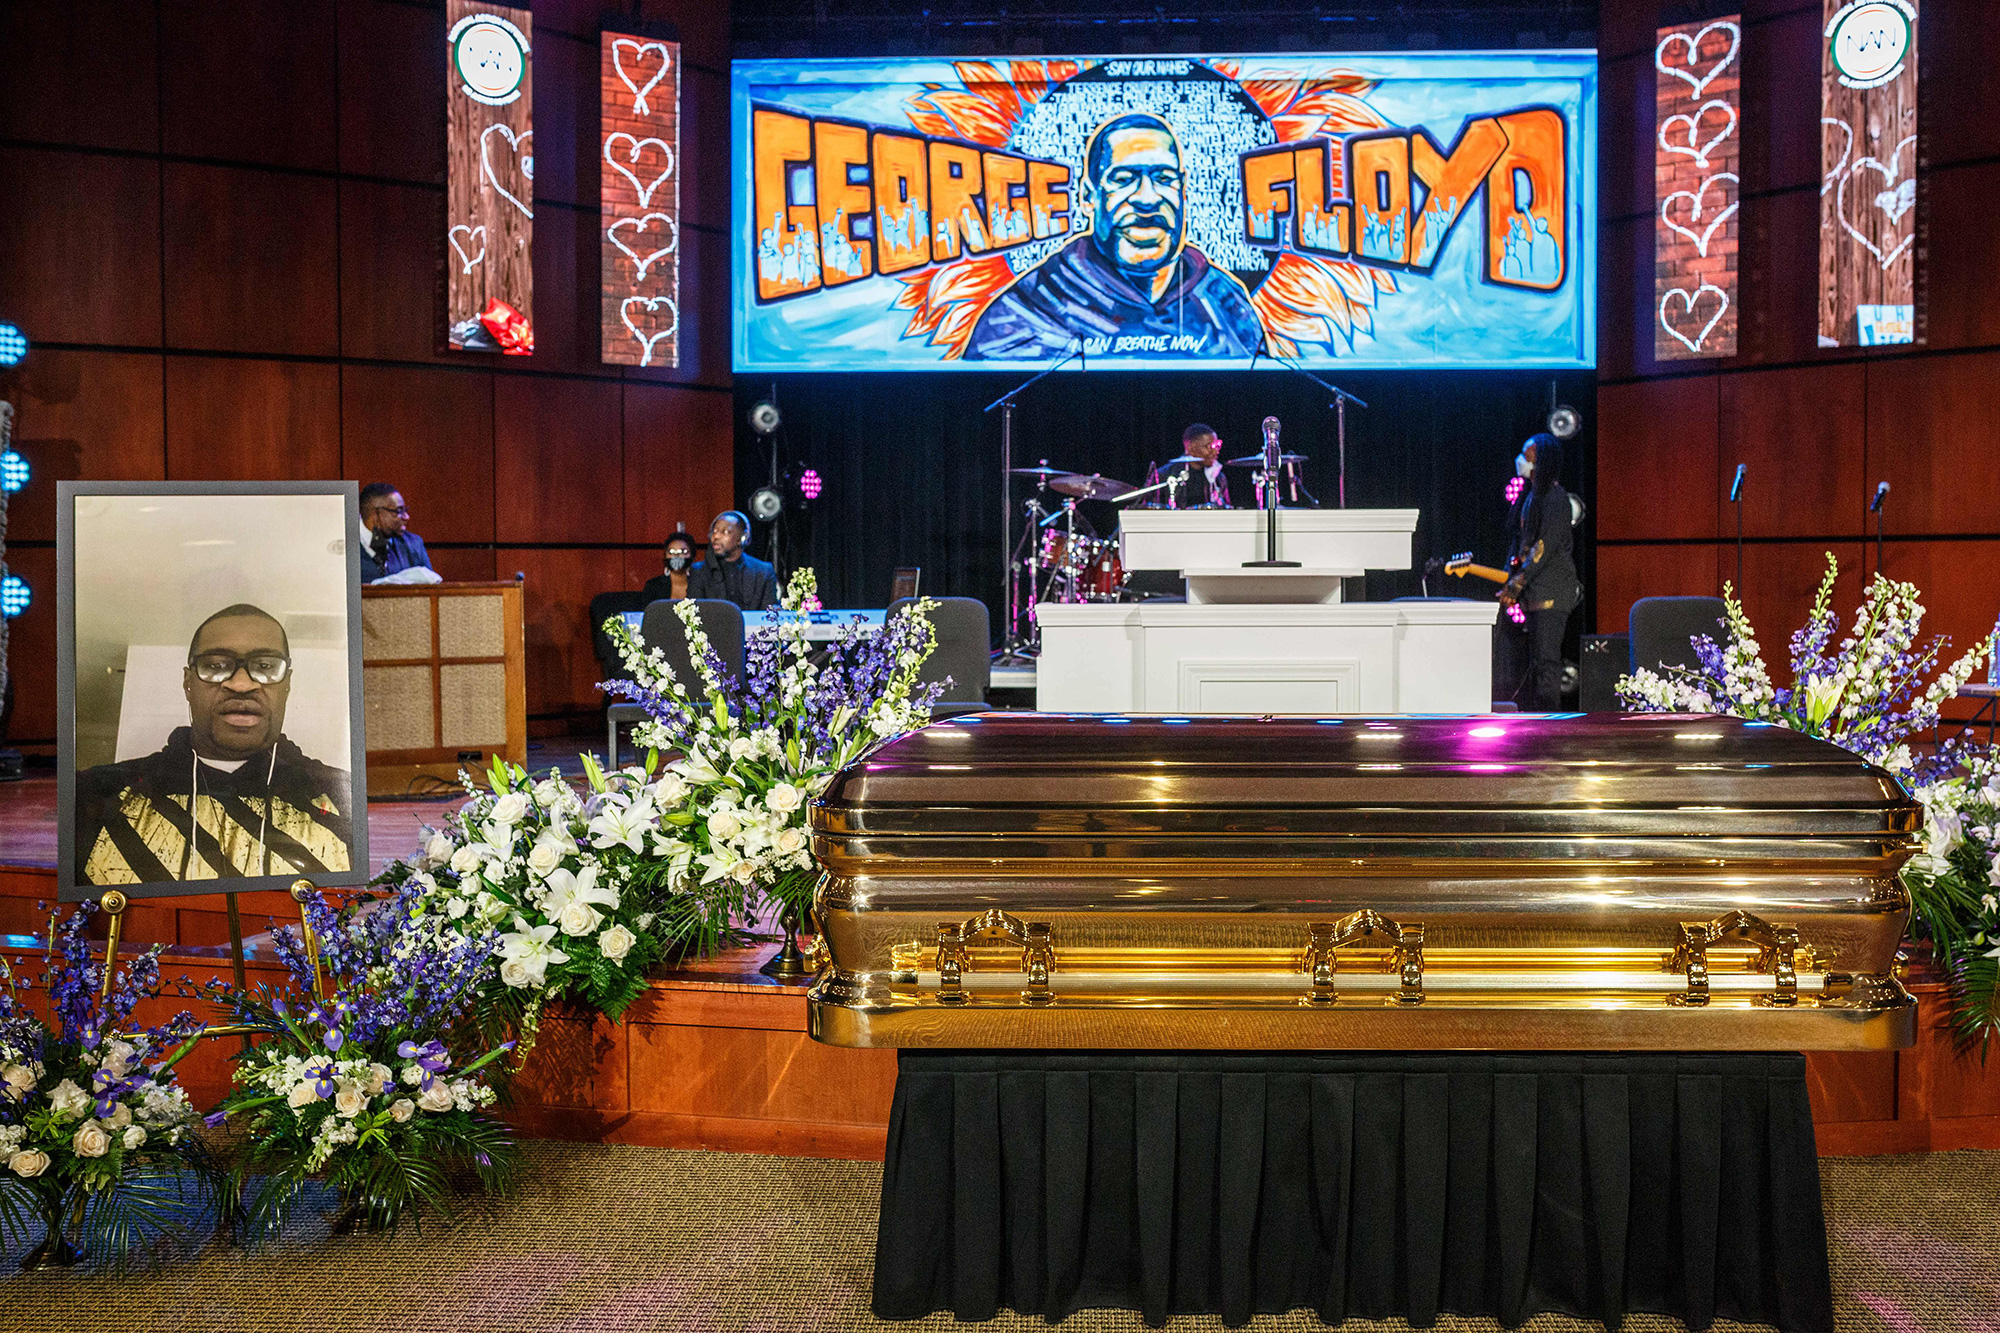 The remains of George Floyd await a memorial service in his honor on June 4, 2020